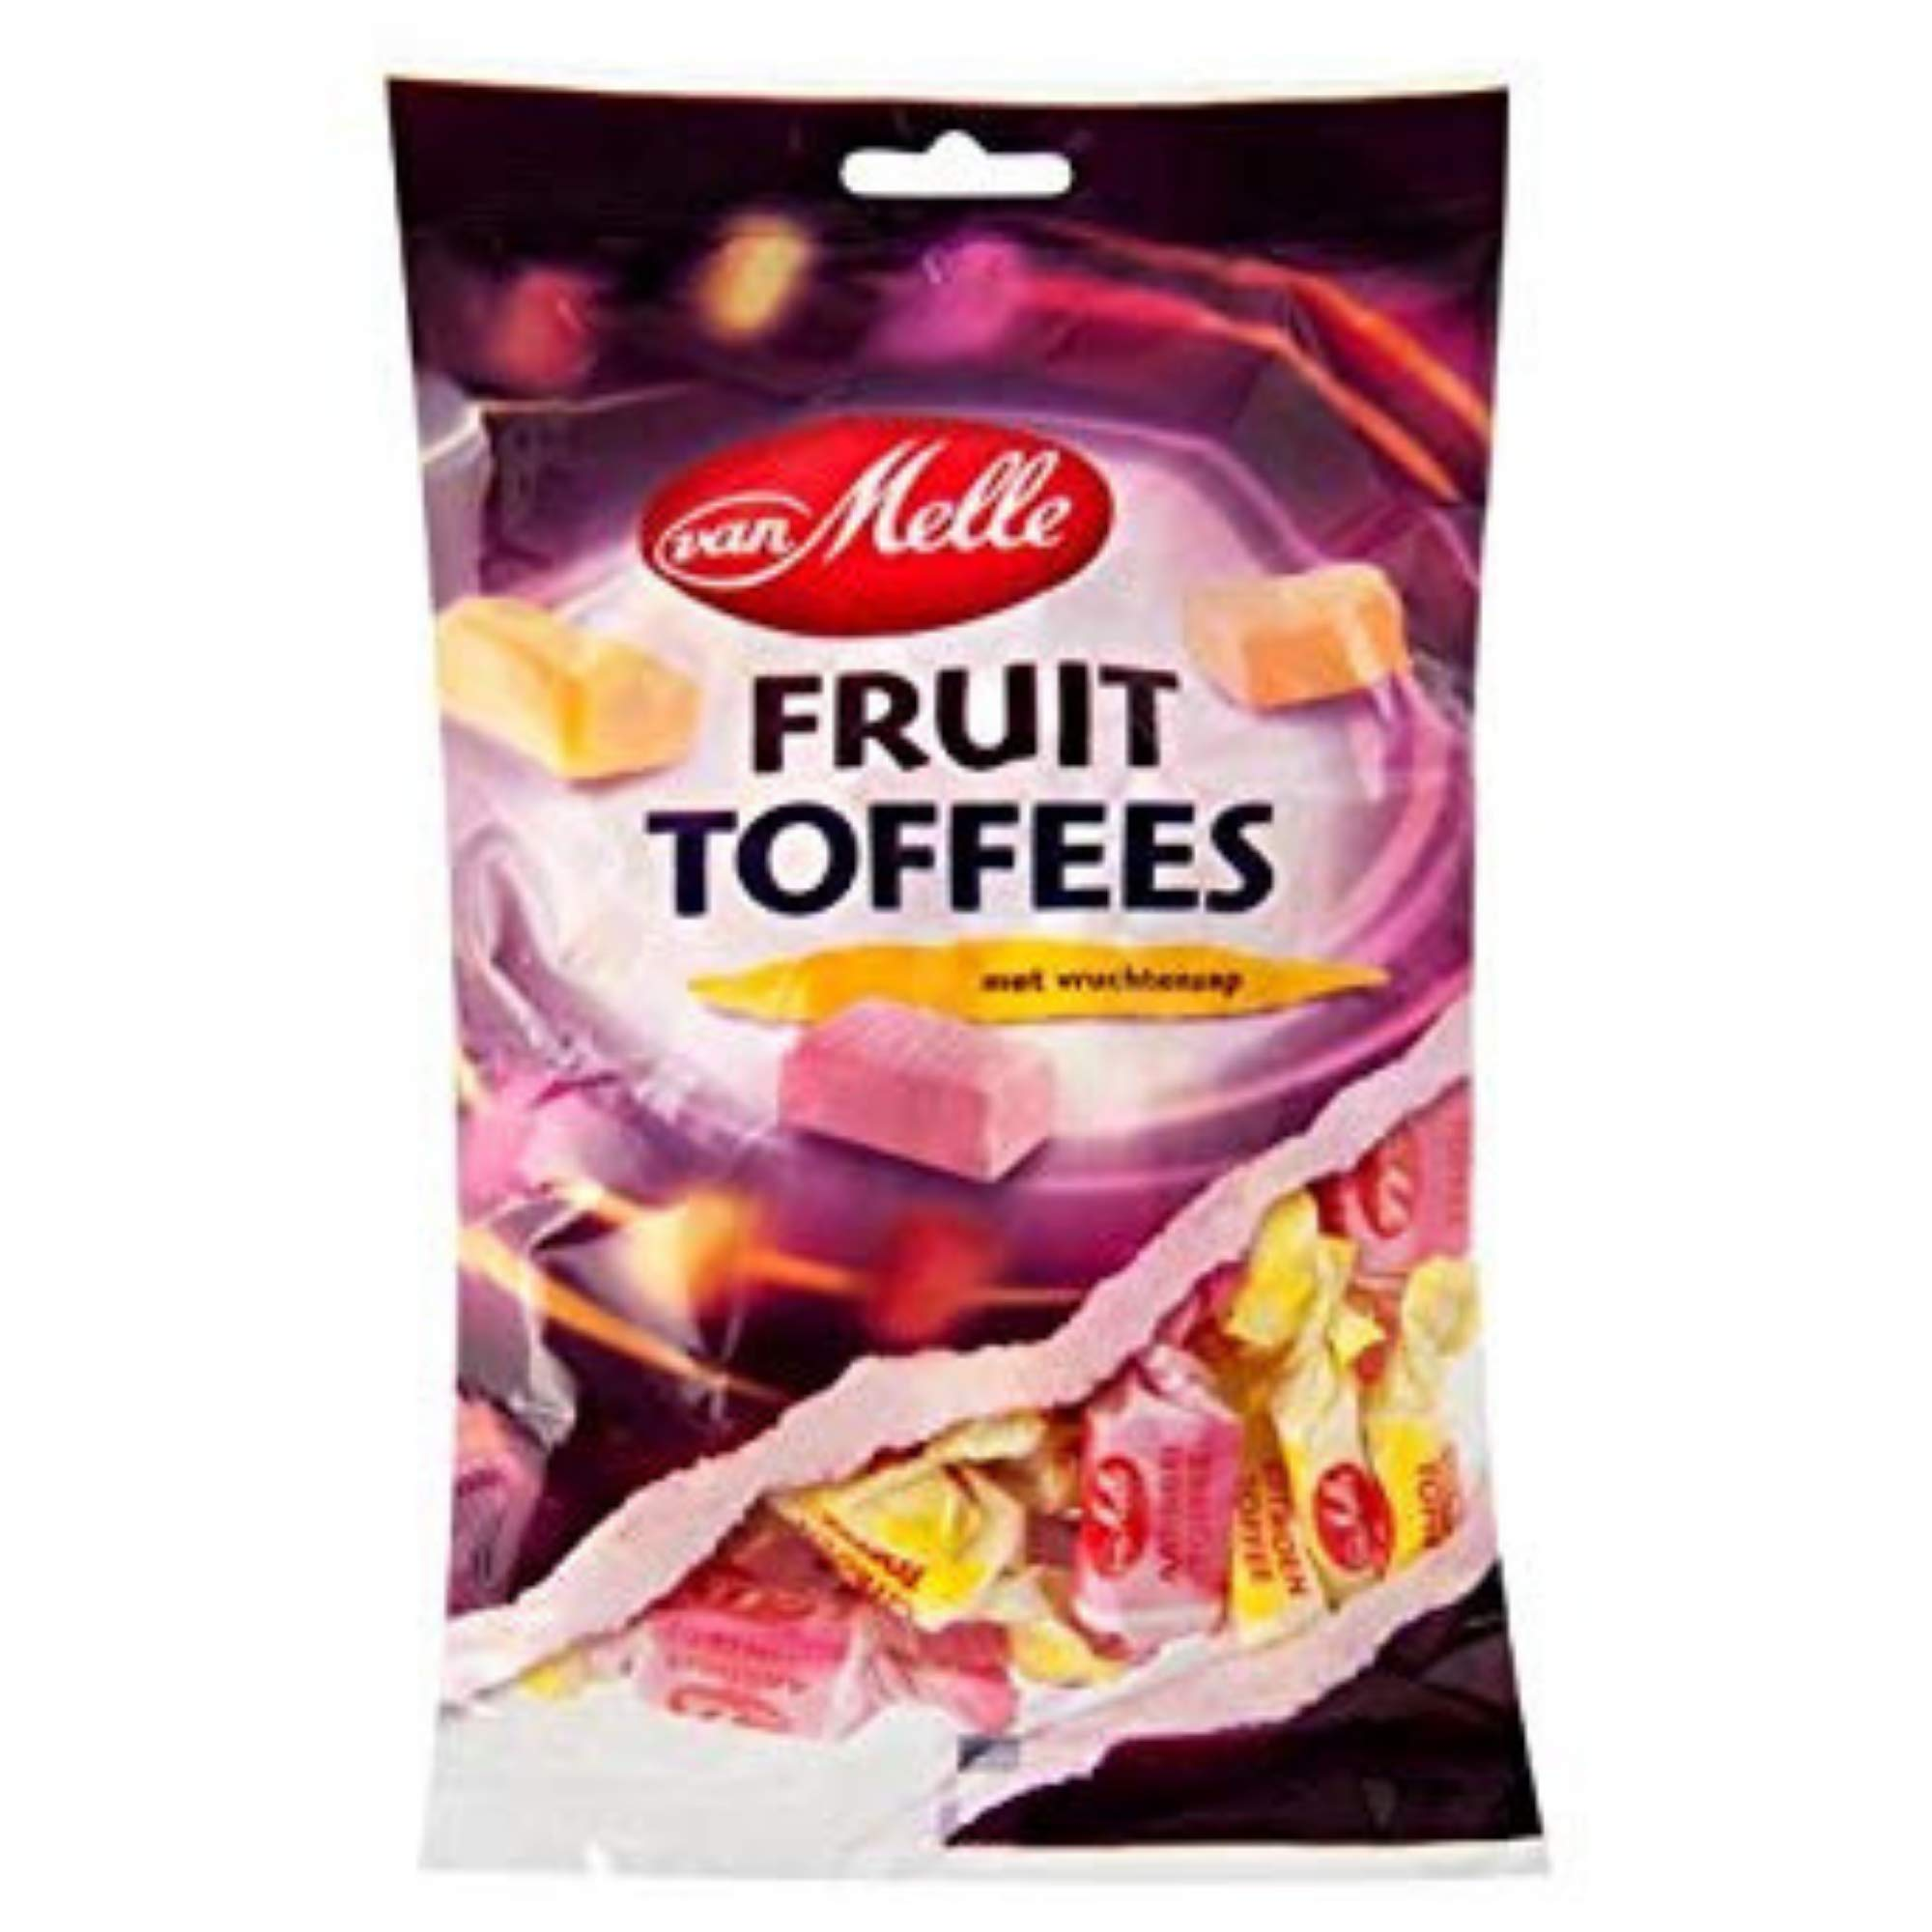 Van Melle Fruit Toffees Candies - (1-Pack) - Dutch Holland Imported Candy, 8.8 oz Per Bag